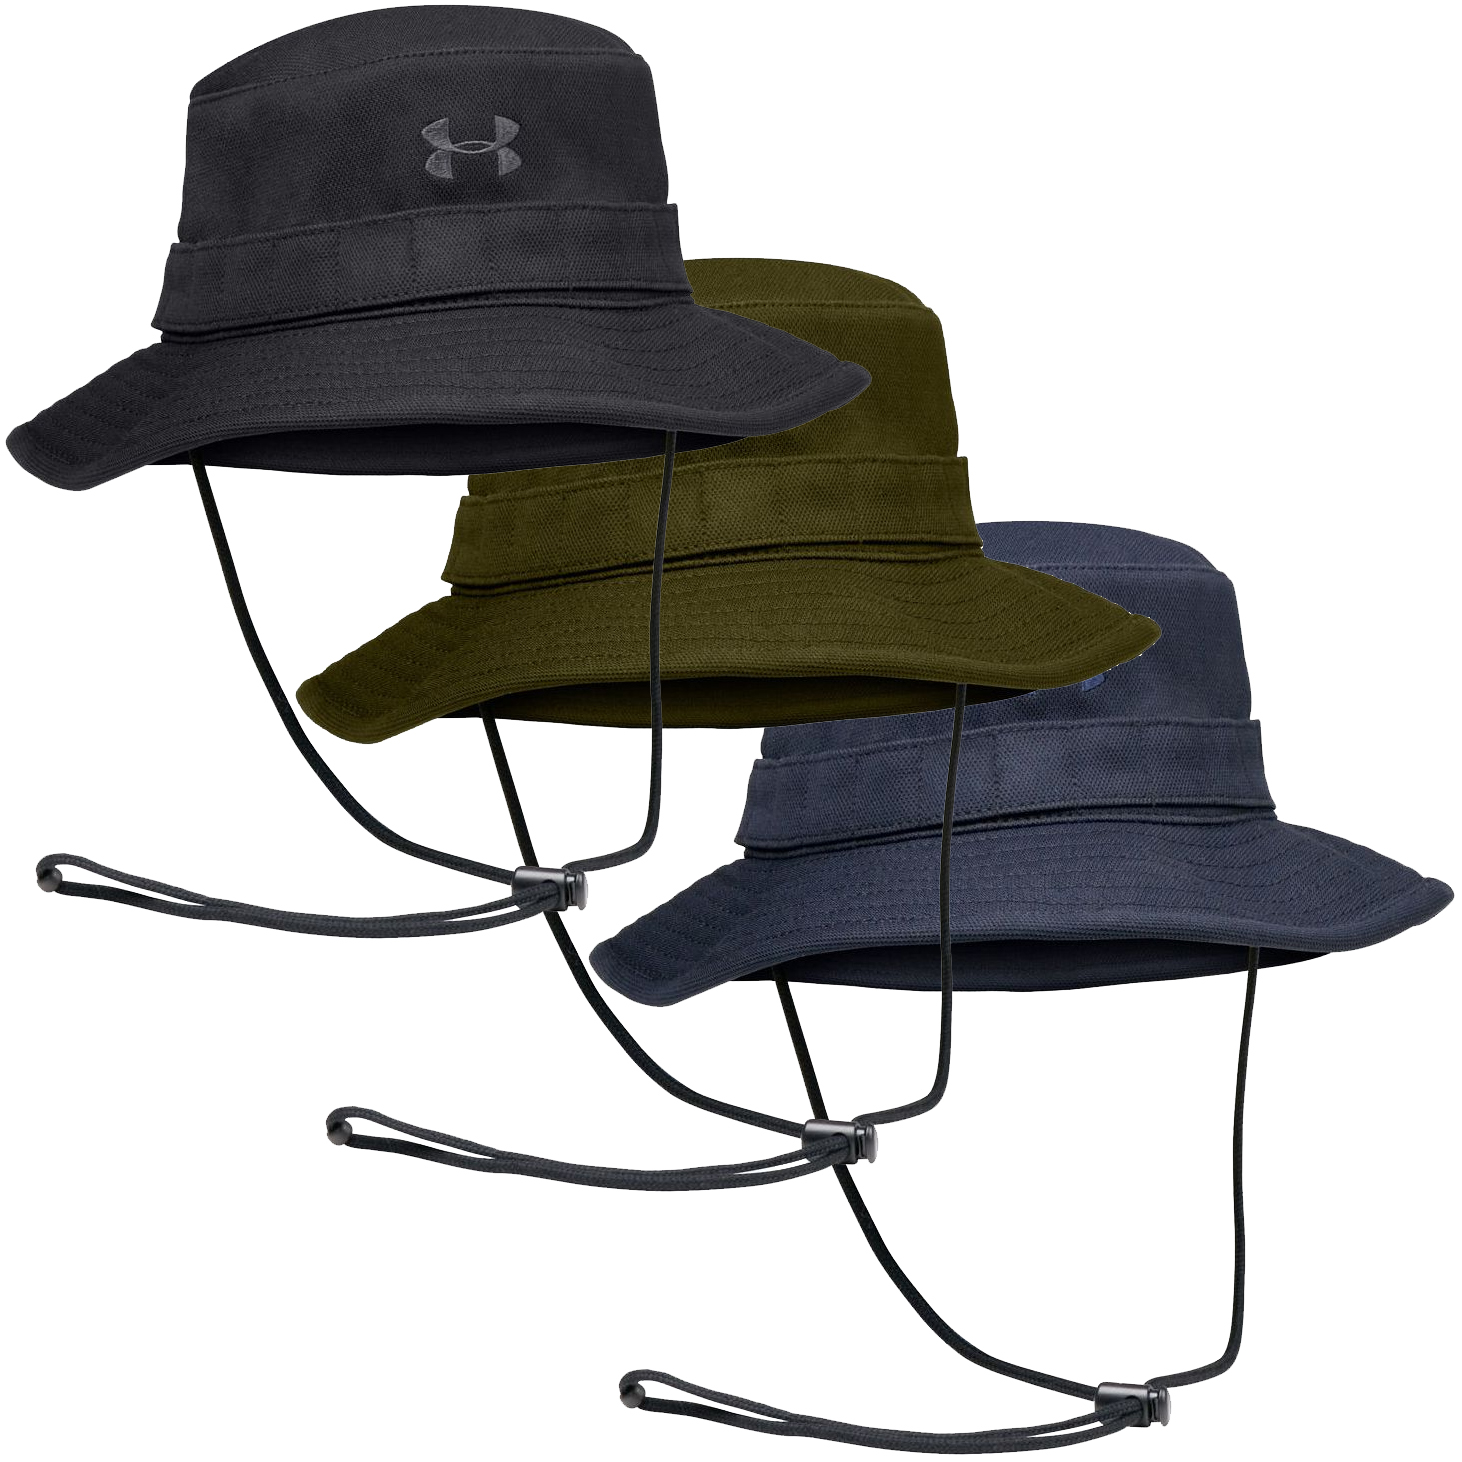 Cheap under armour safari hat Buy Online  OFF46% Discounted 502a3bccd52